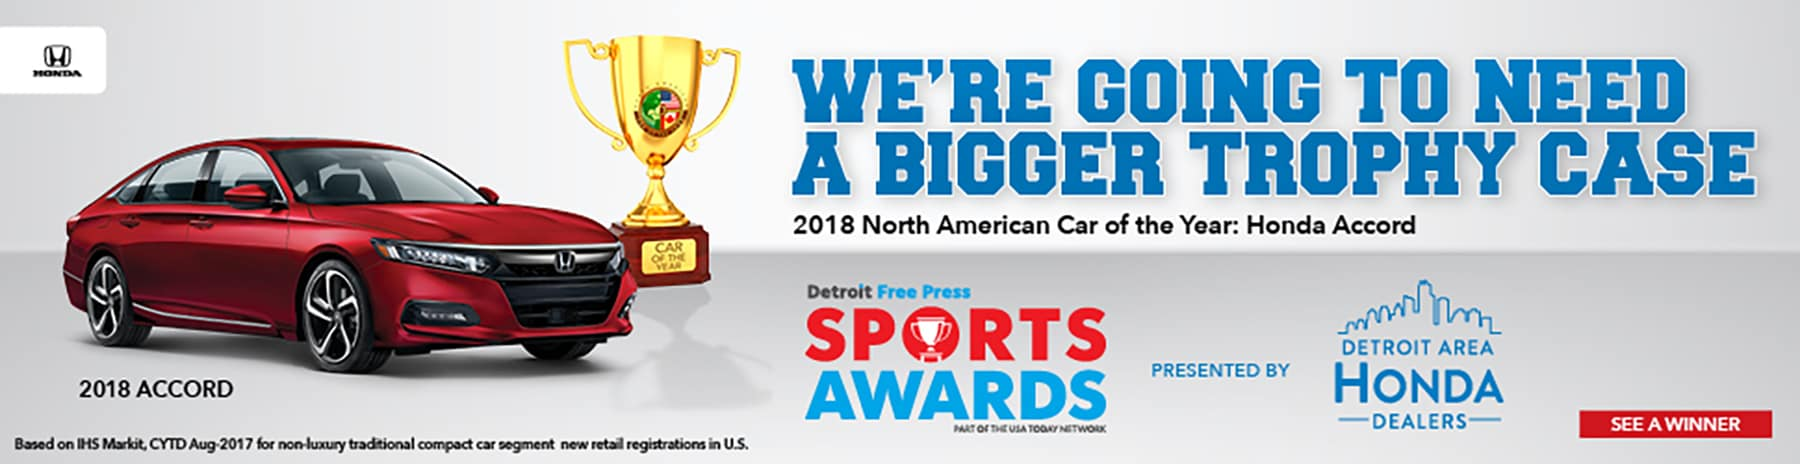 Detroit Free Press Sports Awards Slider